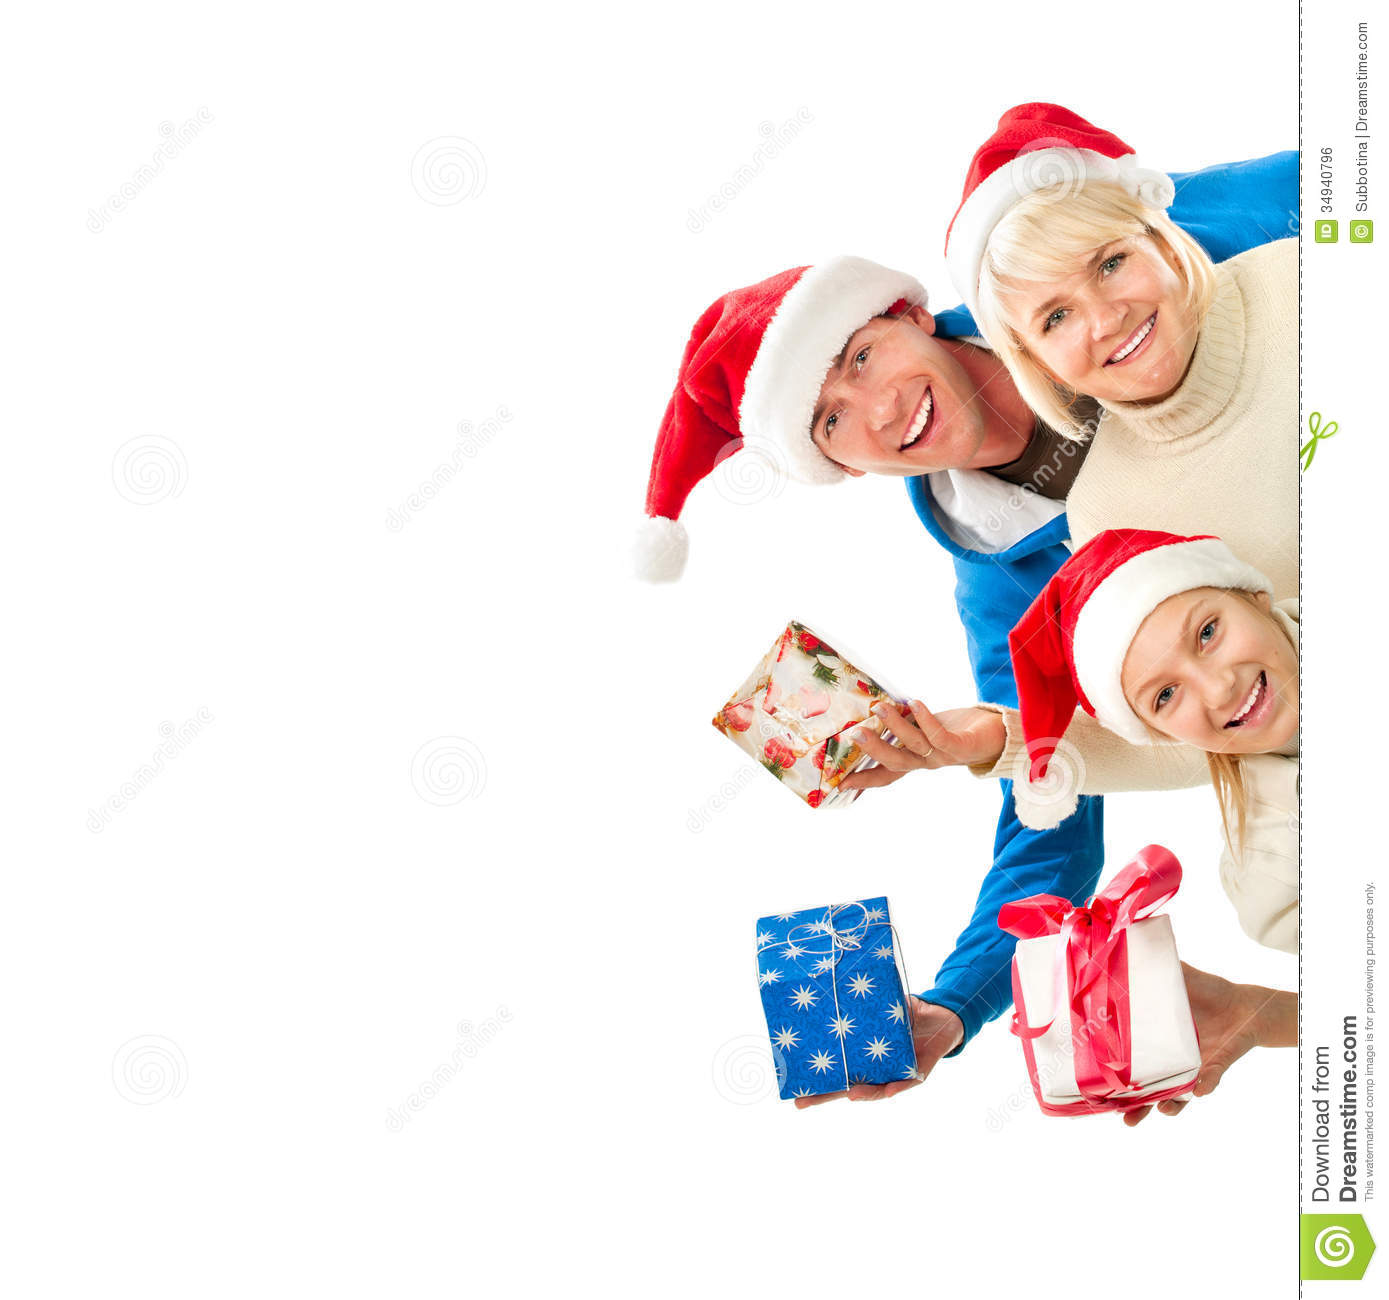 Christmas Family Photo Christmas Family With Gifts Royalty Free Stock Image Image 34940796